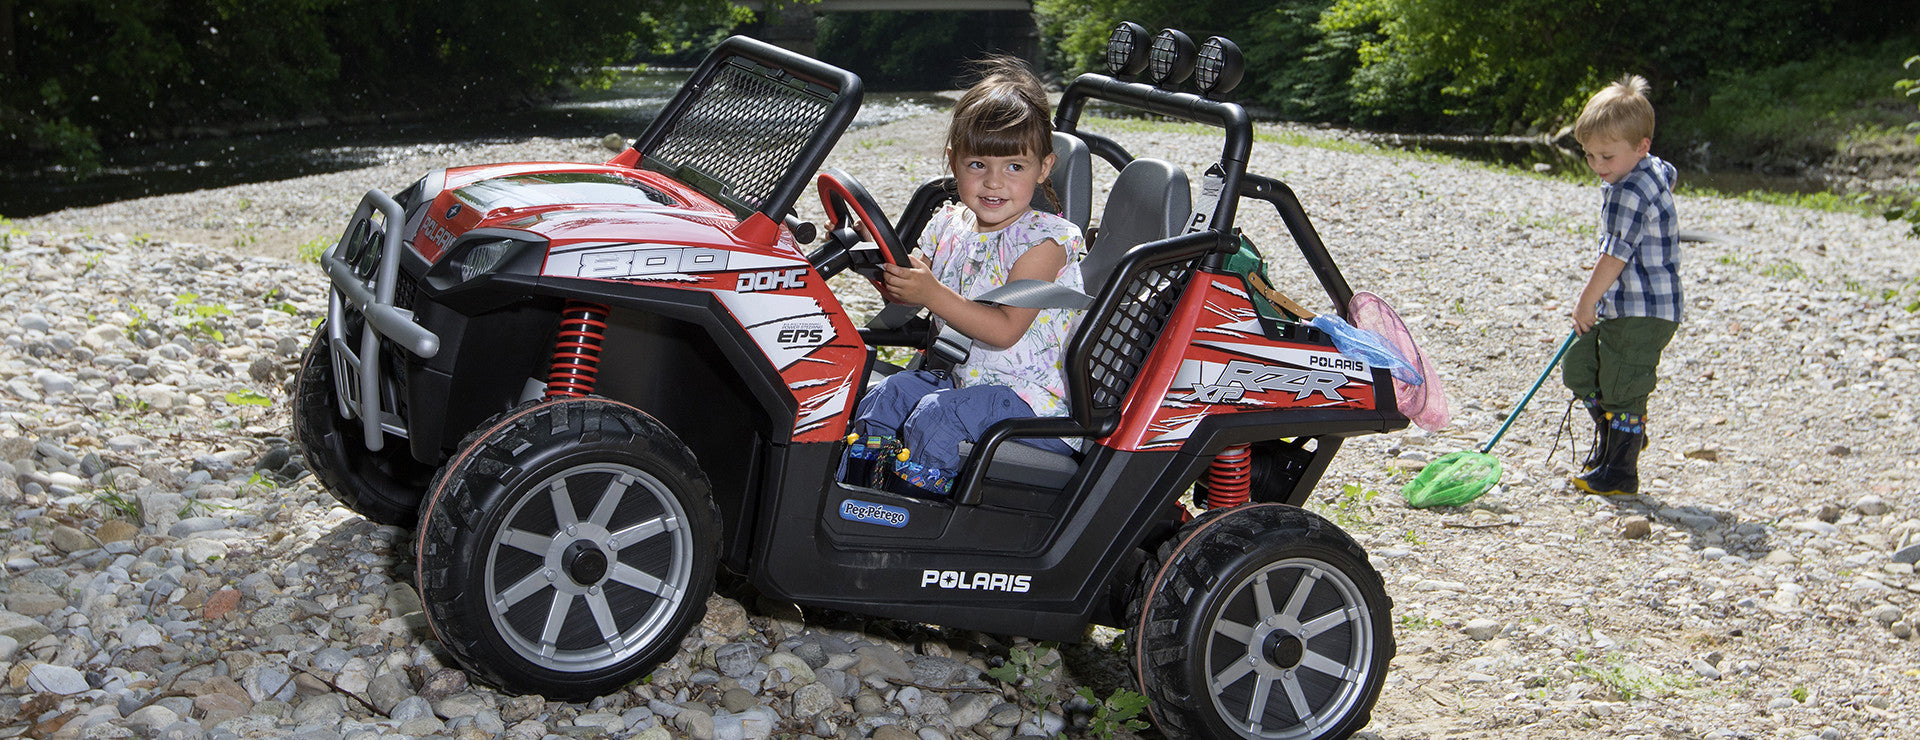 Polaris Ranger RZR Peg Perego Ride On Kids Off Road Car